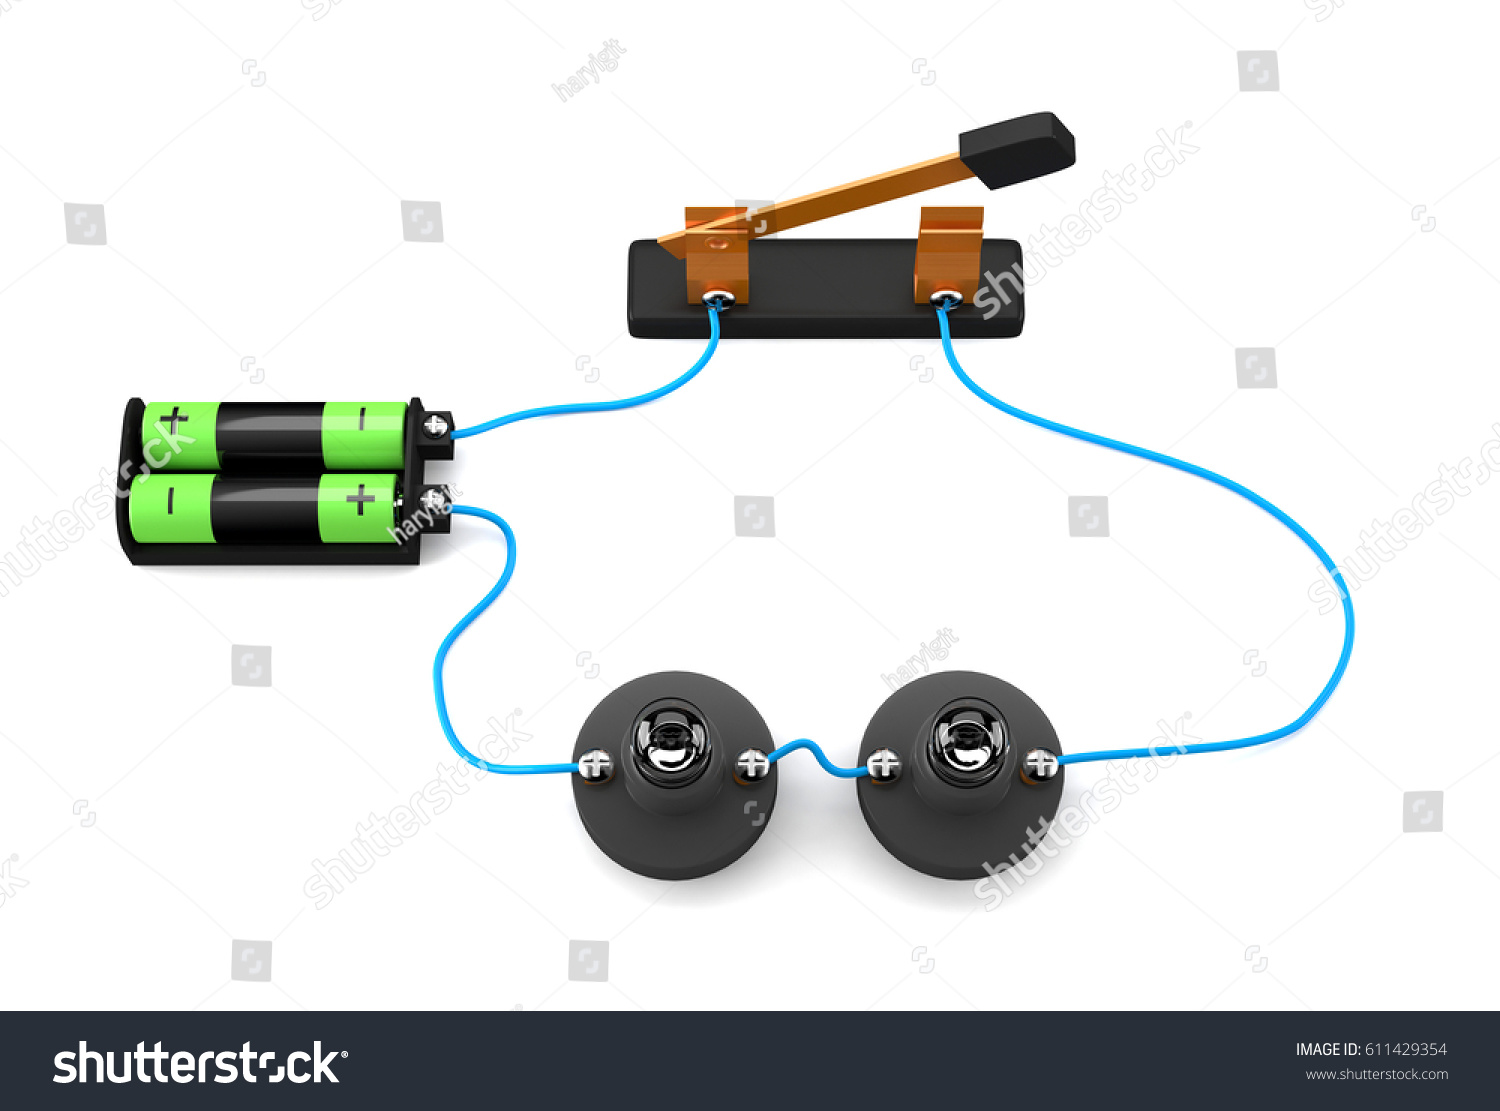 Simple Electric Circuit Series Connection On Stock Illustration White Background3d Rendering